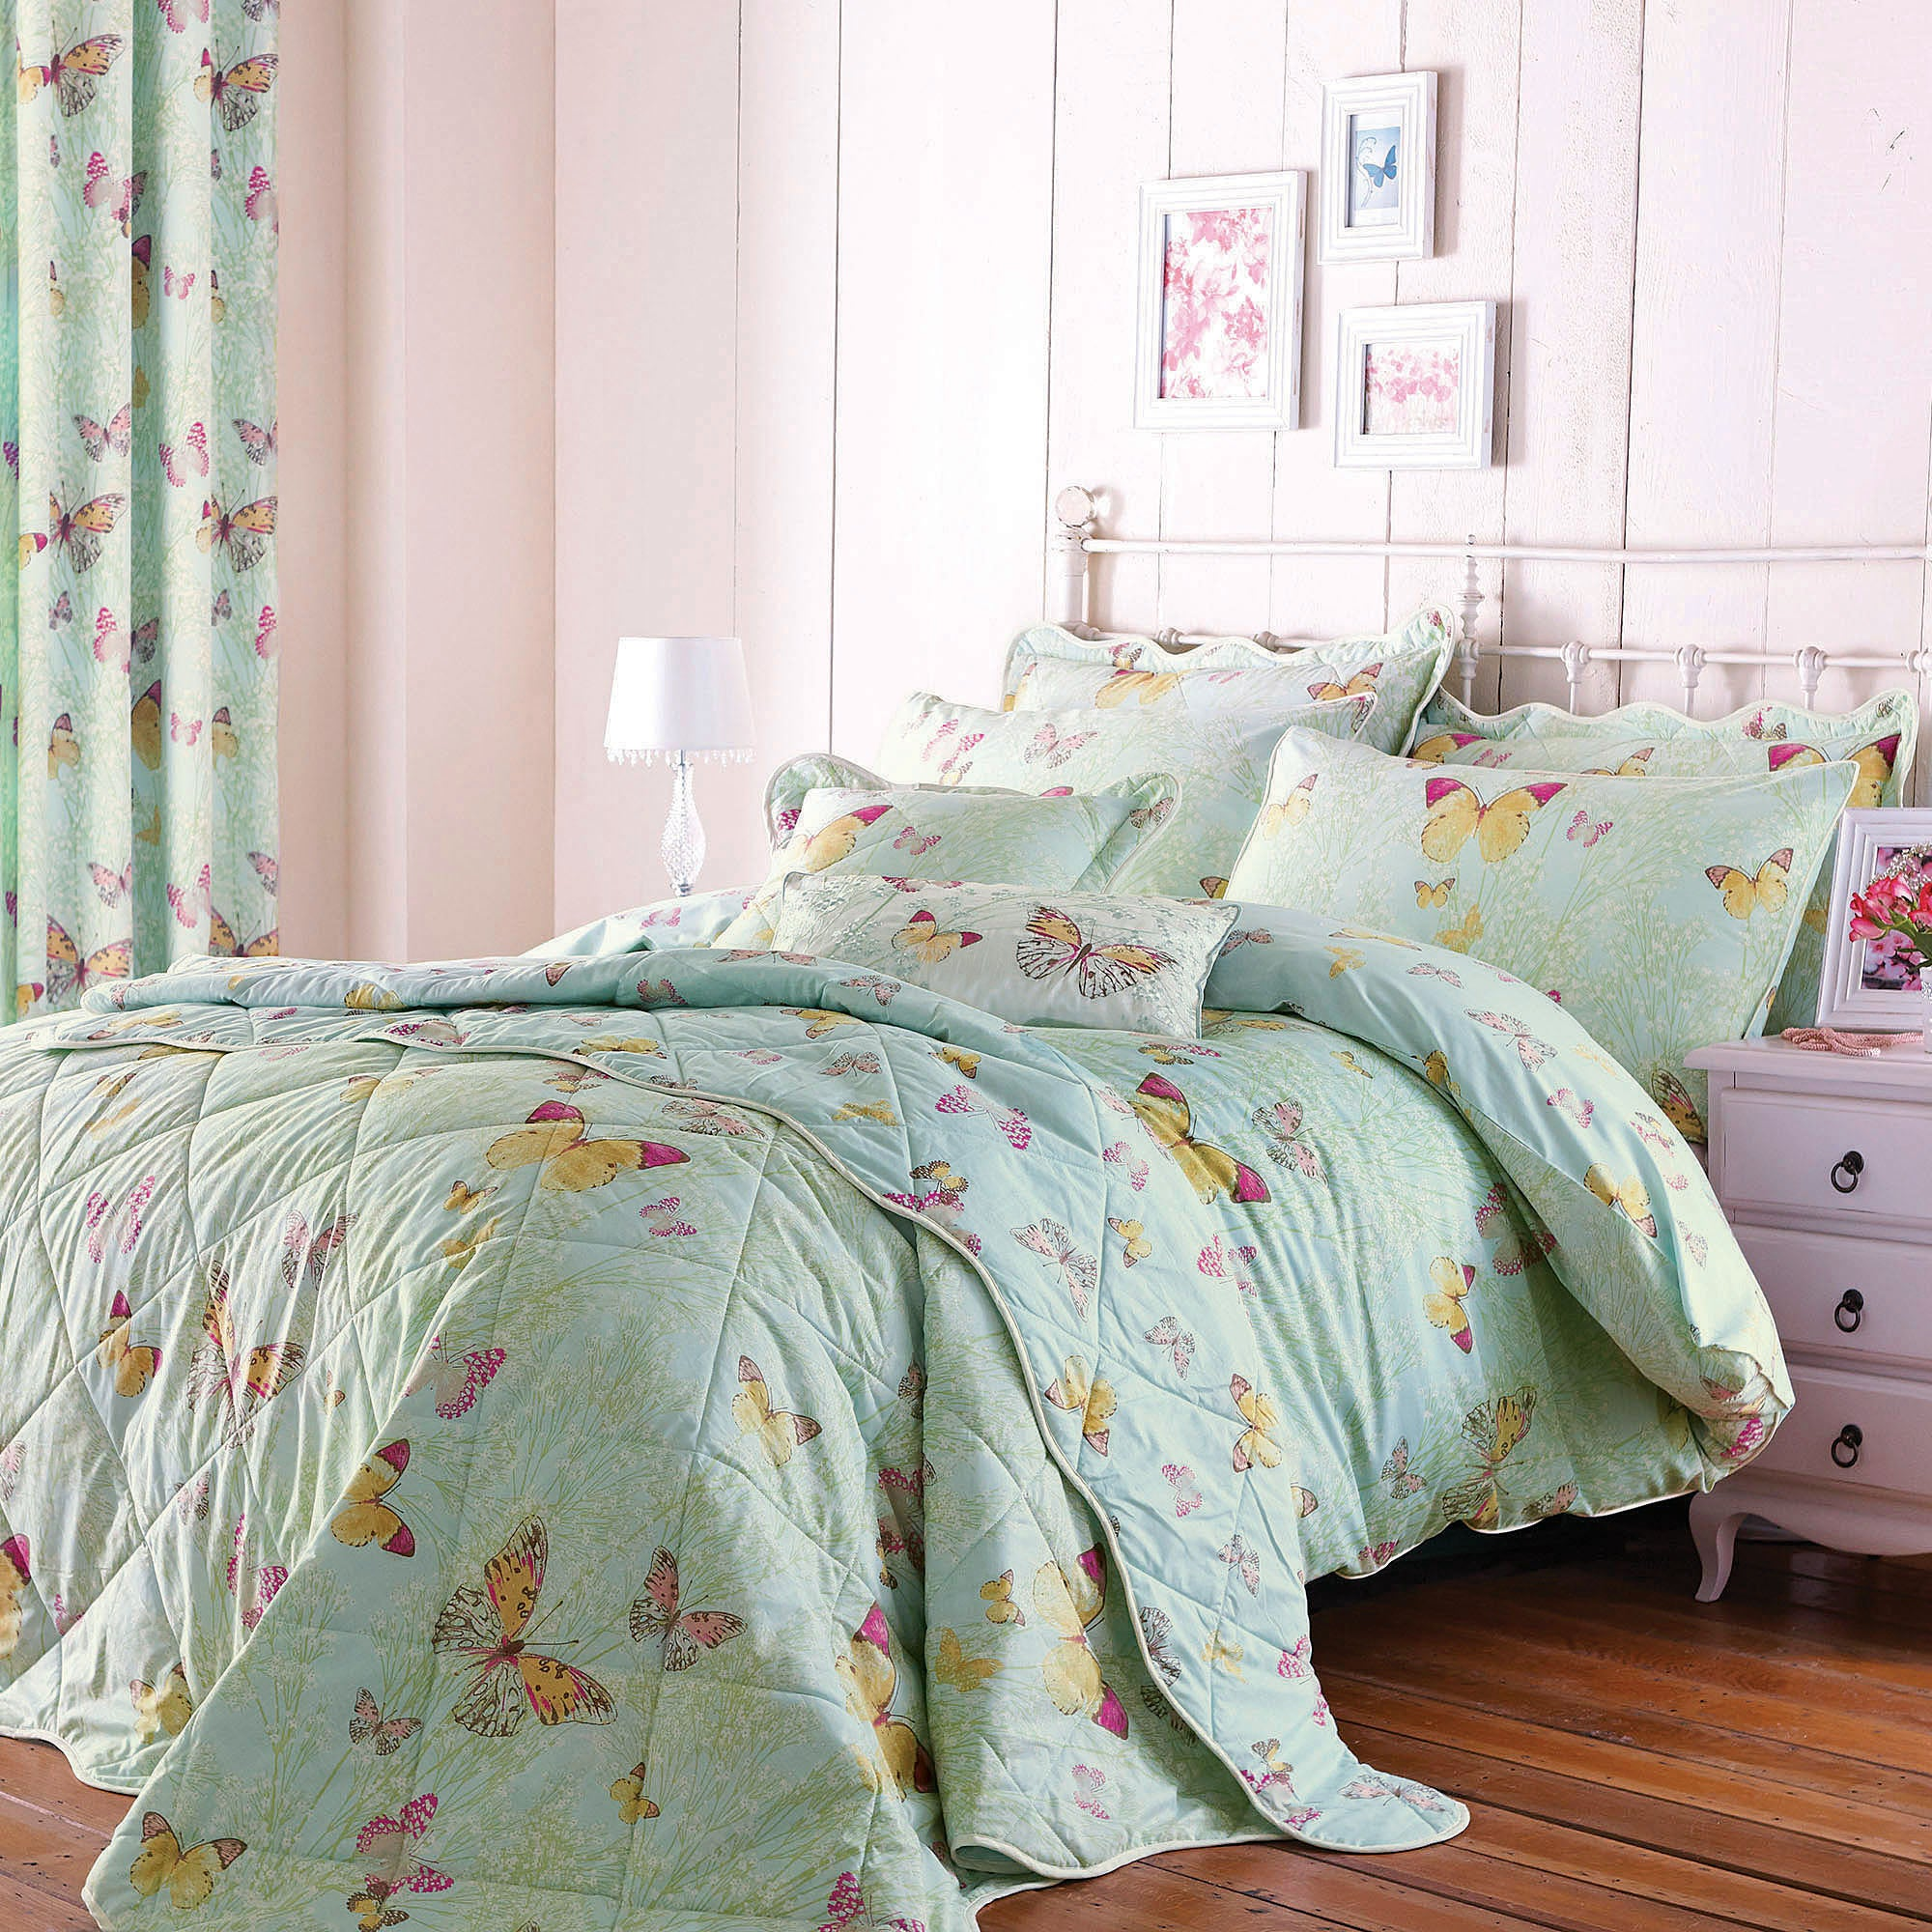 Botanica Butterfly Eau de Nil Bed Linen Collection